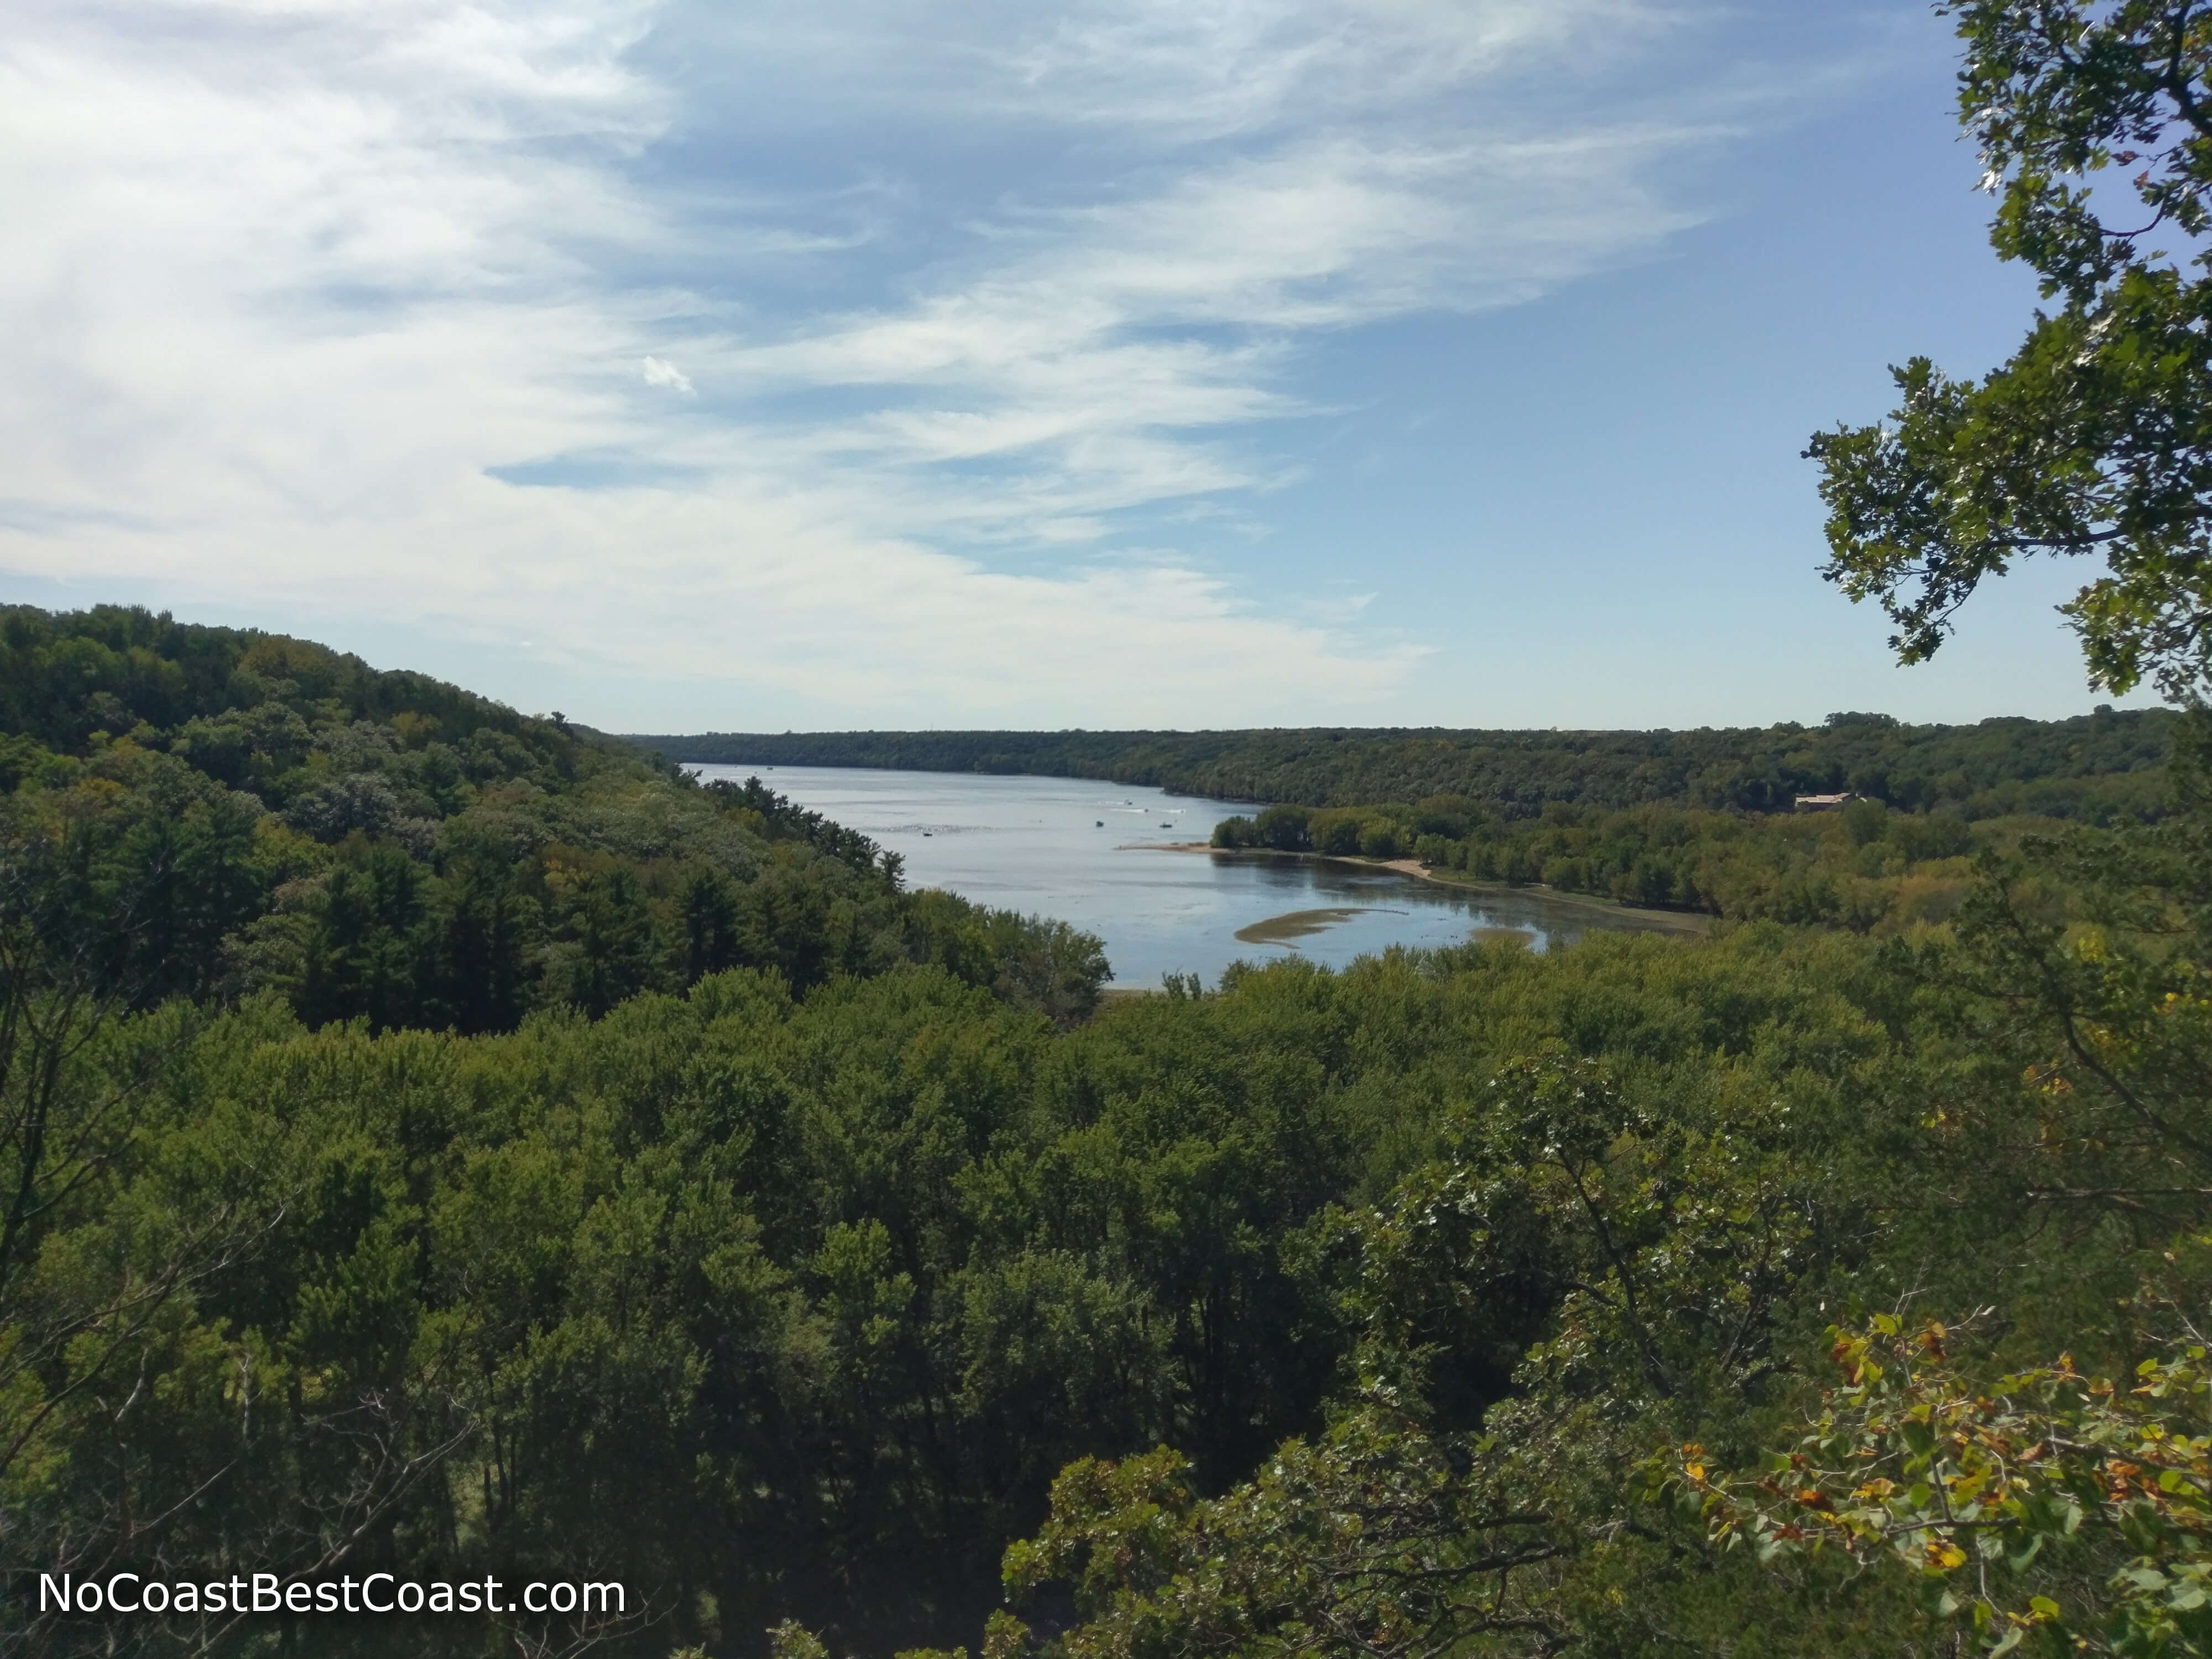 The forested bluffs of the St. Croix River from Kinnickinnic State Park